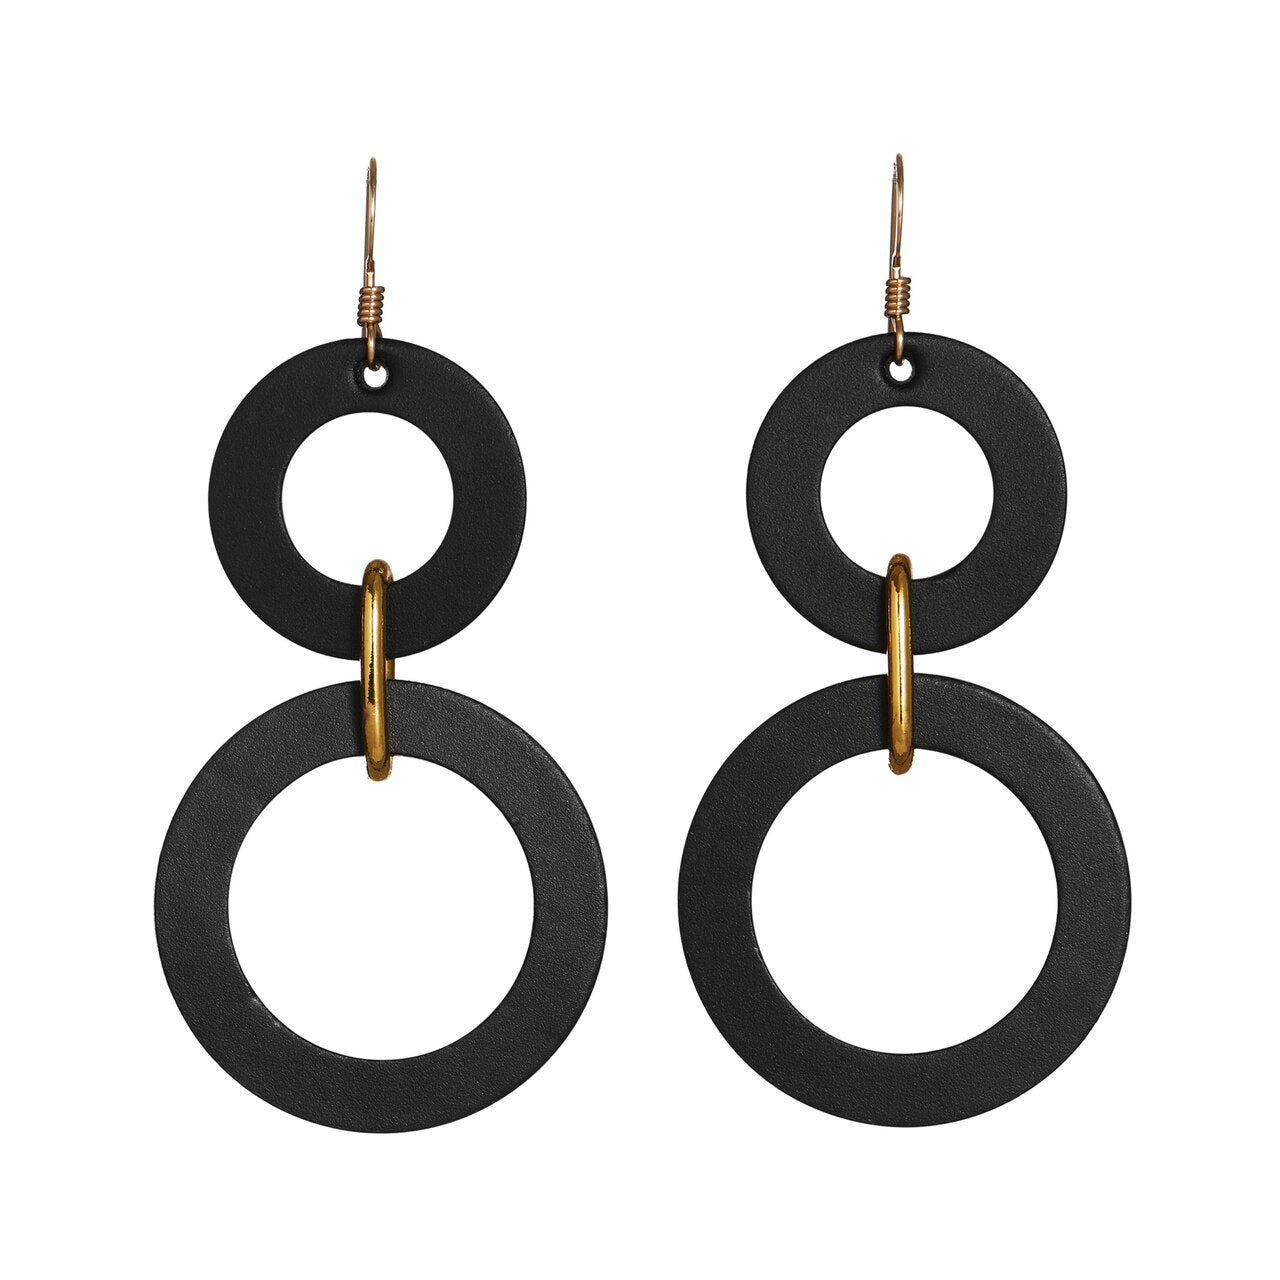 DBL CIRCLE LEATHER EARRINGS-BLACK